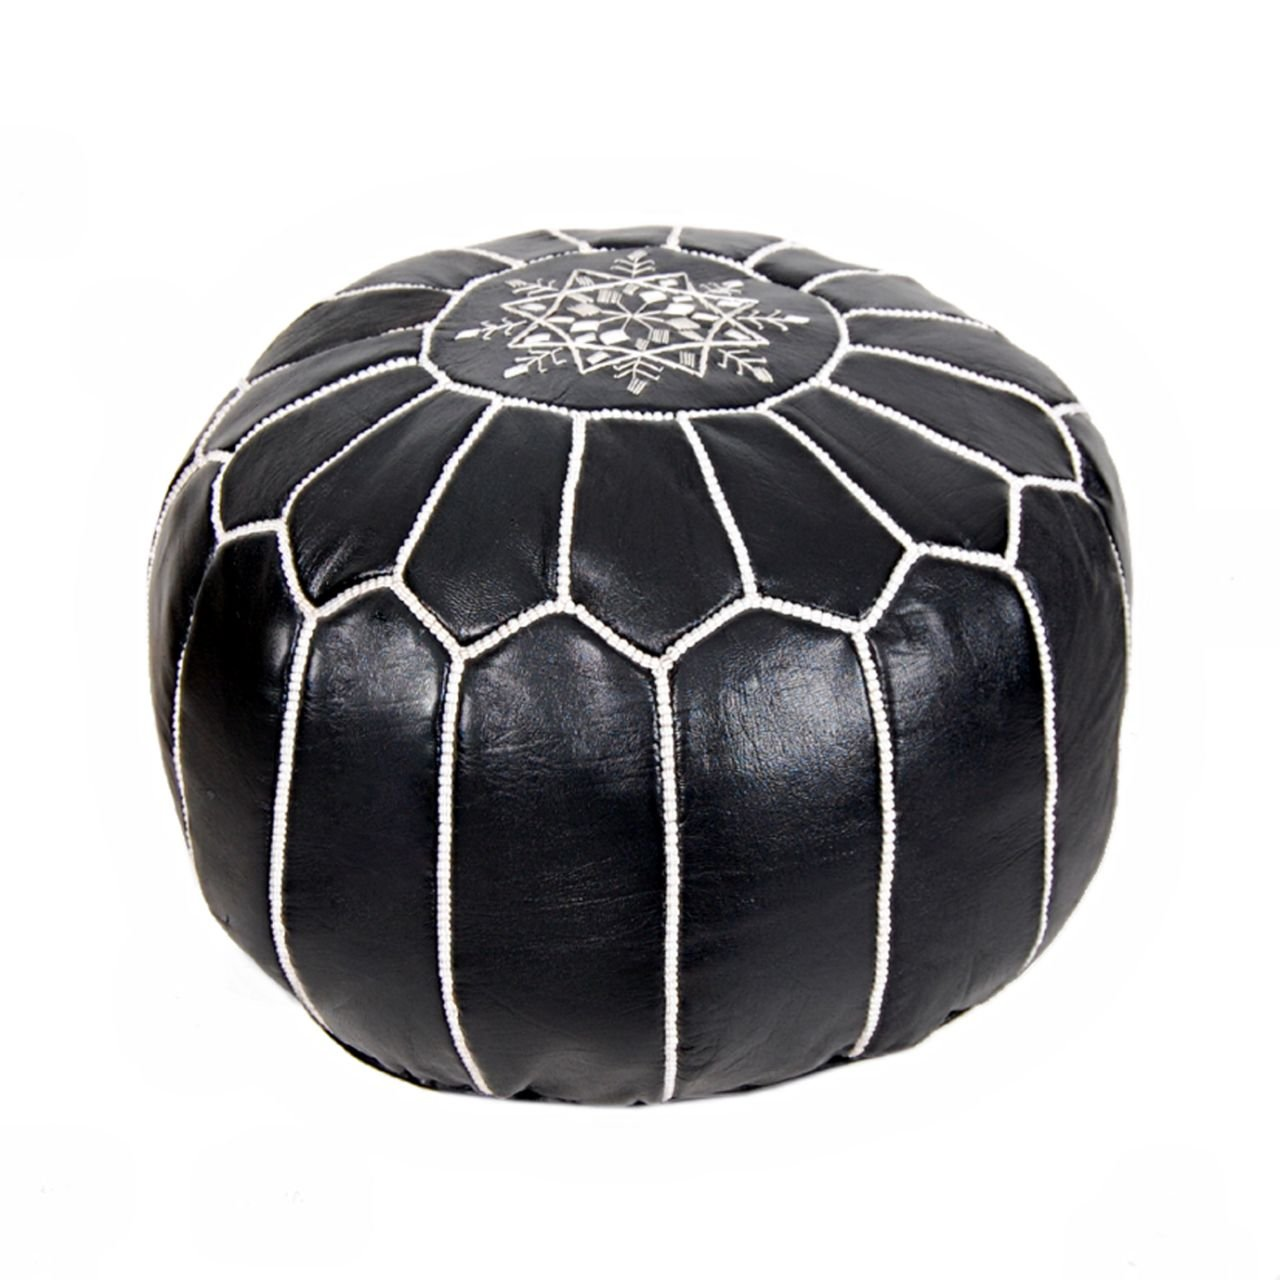 Moroccan Leather Pouf Ottoman Footstool (Leather) Genuine Hand-Stitched Seating | Unstuffed | Living Room, Bedroom, Sitting Area | Black White